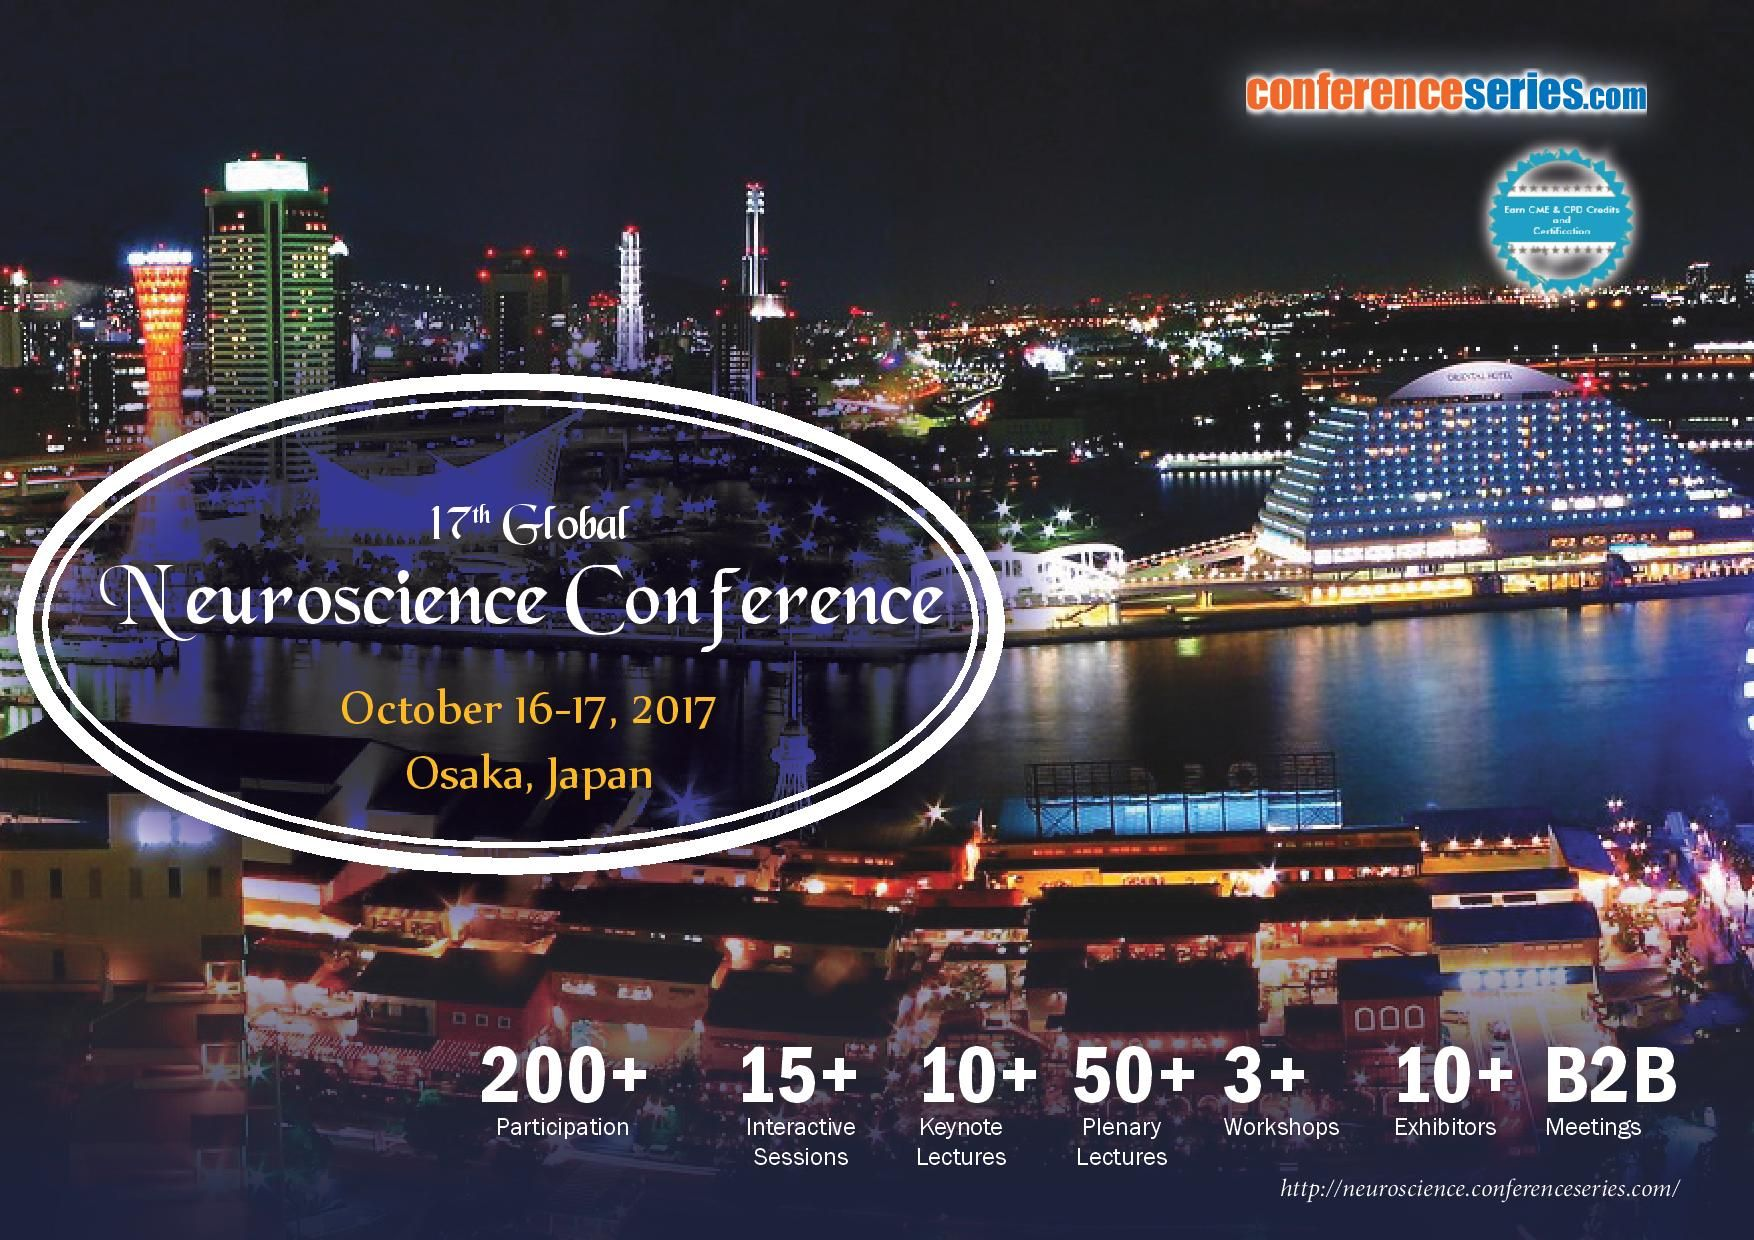 17th Global Neuroscience Conference October 1617, 2017